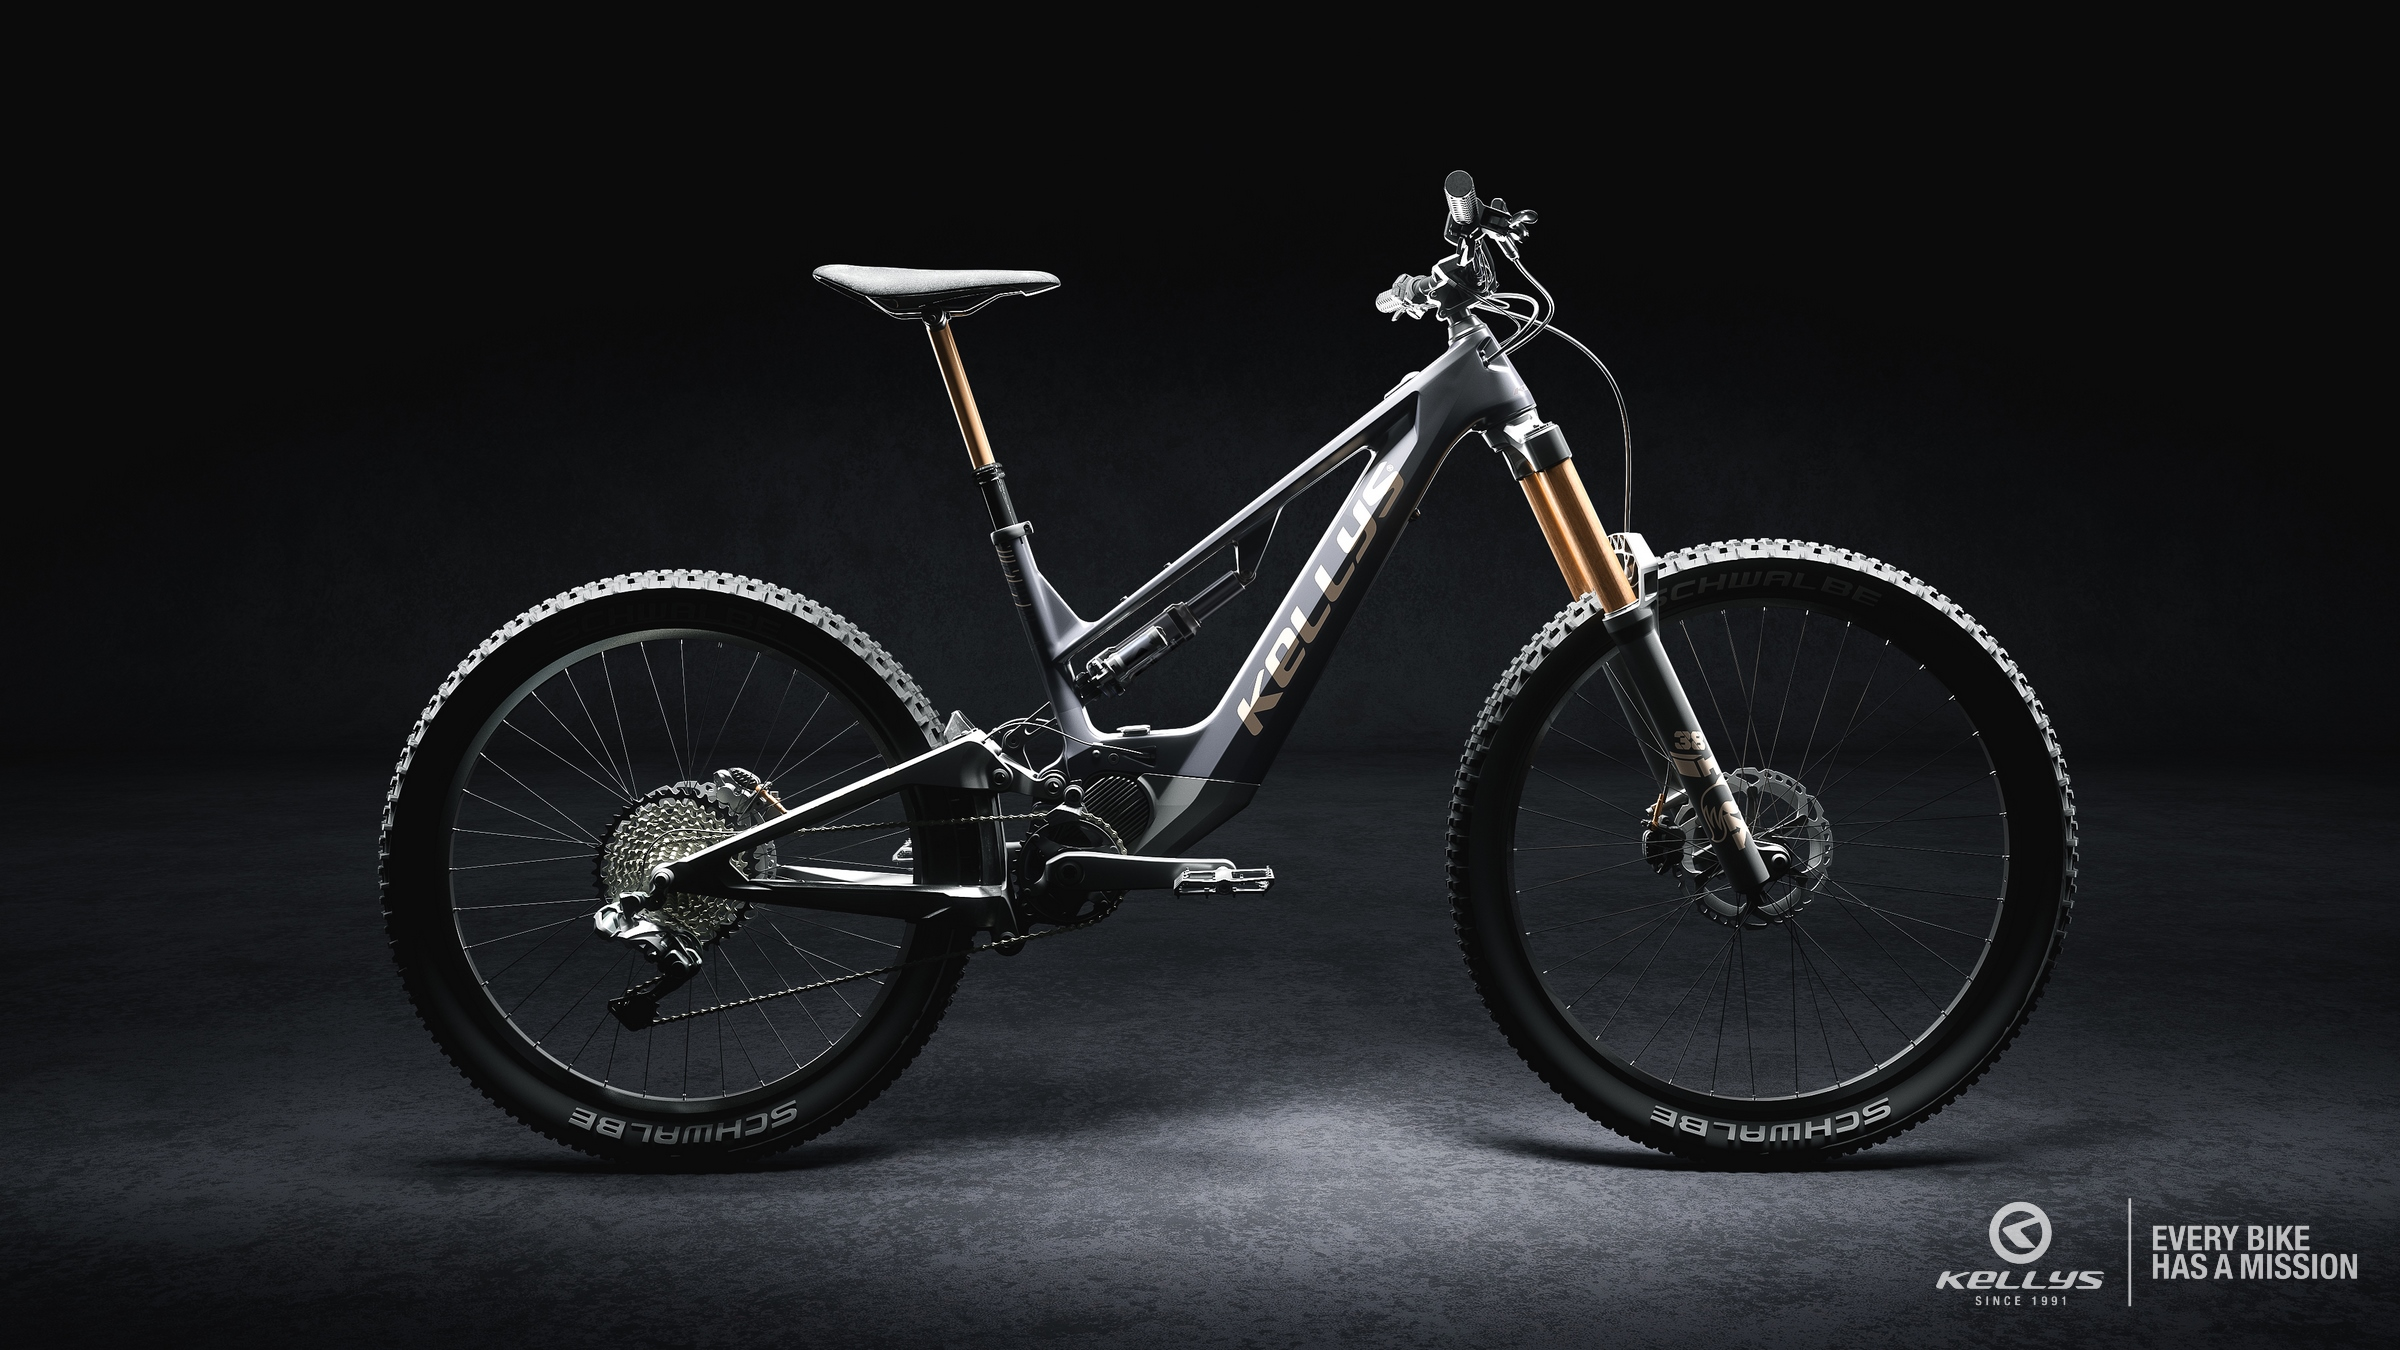 THE ALL-NEW 2021 KELLYS THEOS F SERIES – THE GAME CHANGER